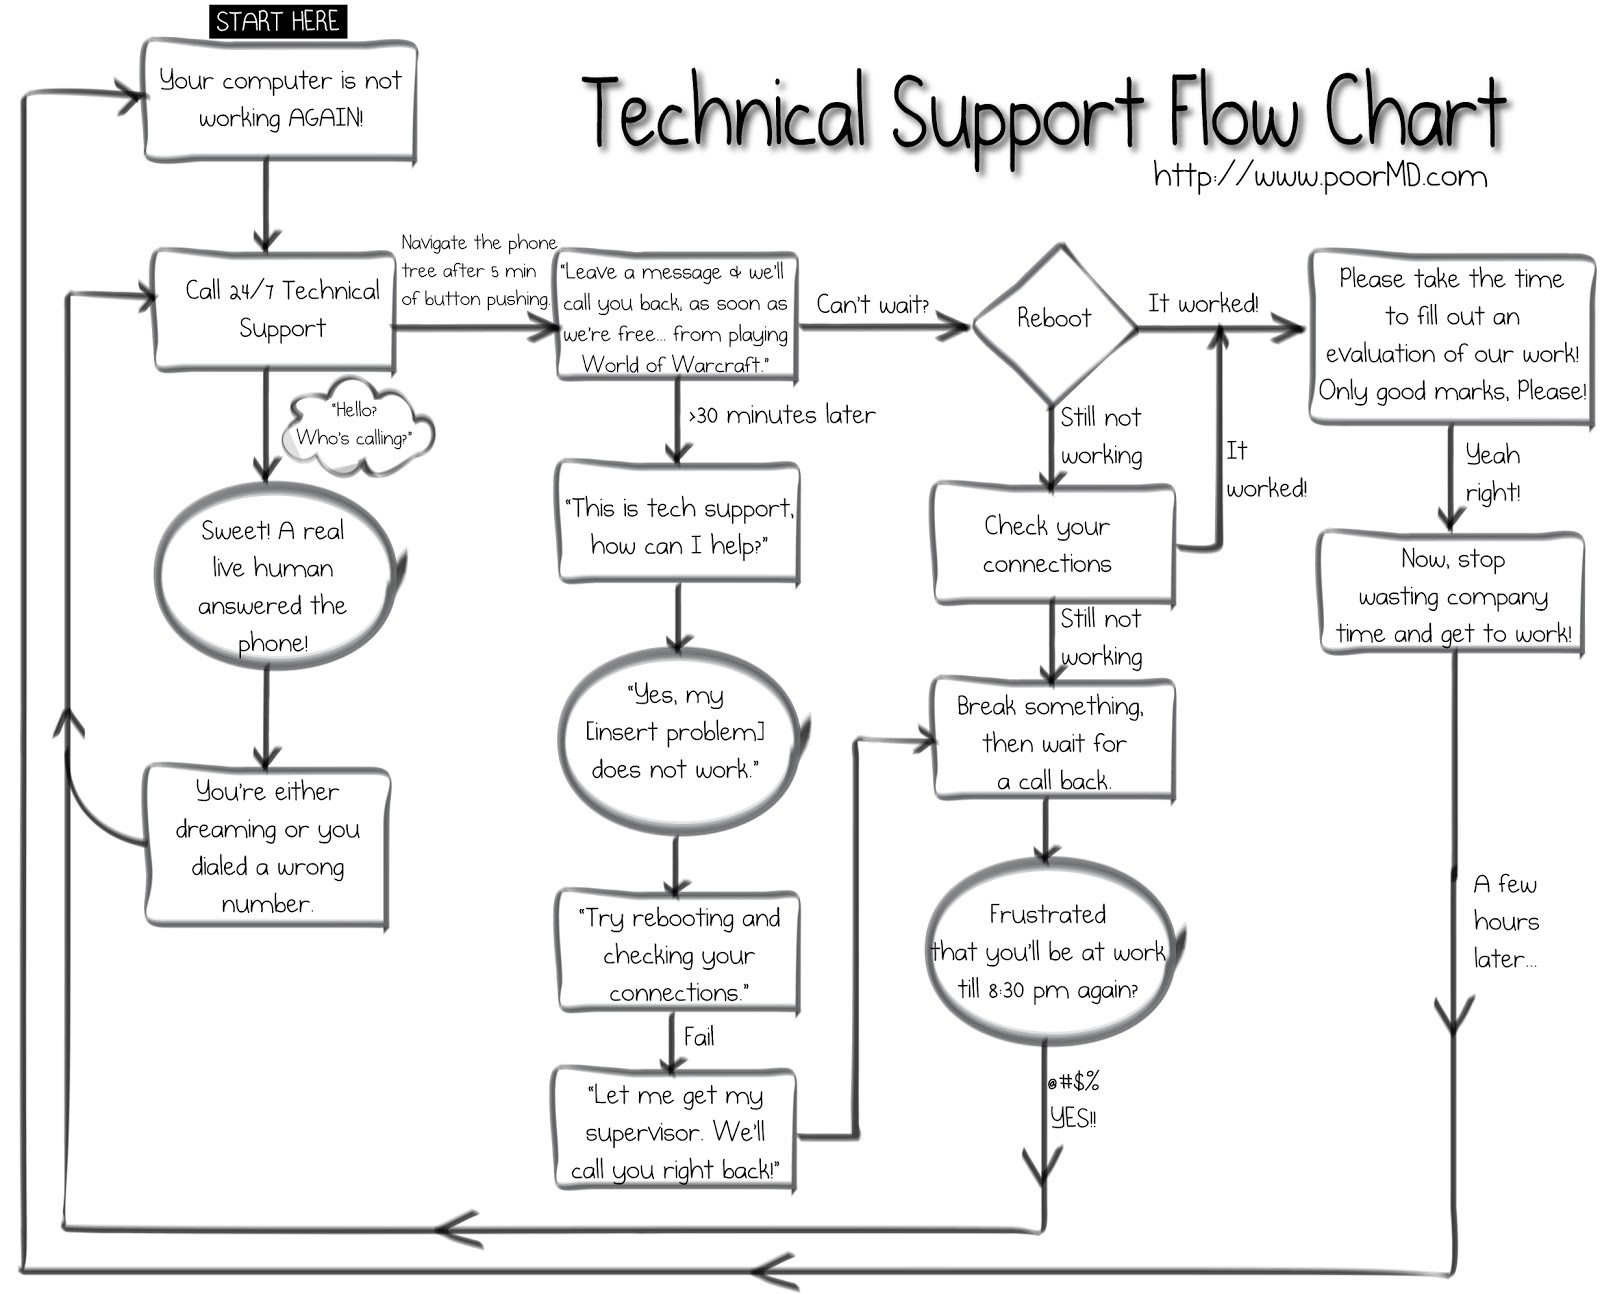 Poor md technical support flow chart technical support flow chart nvjuhfo Choice Image